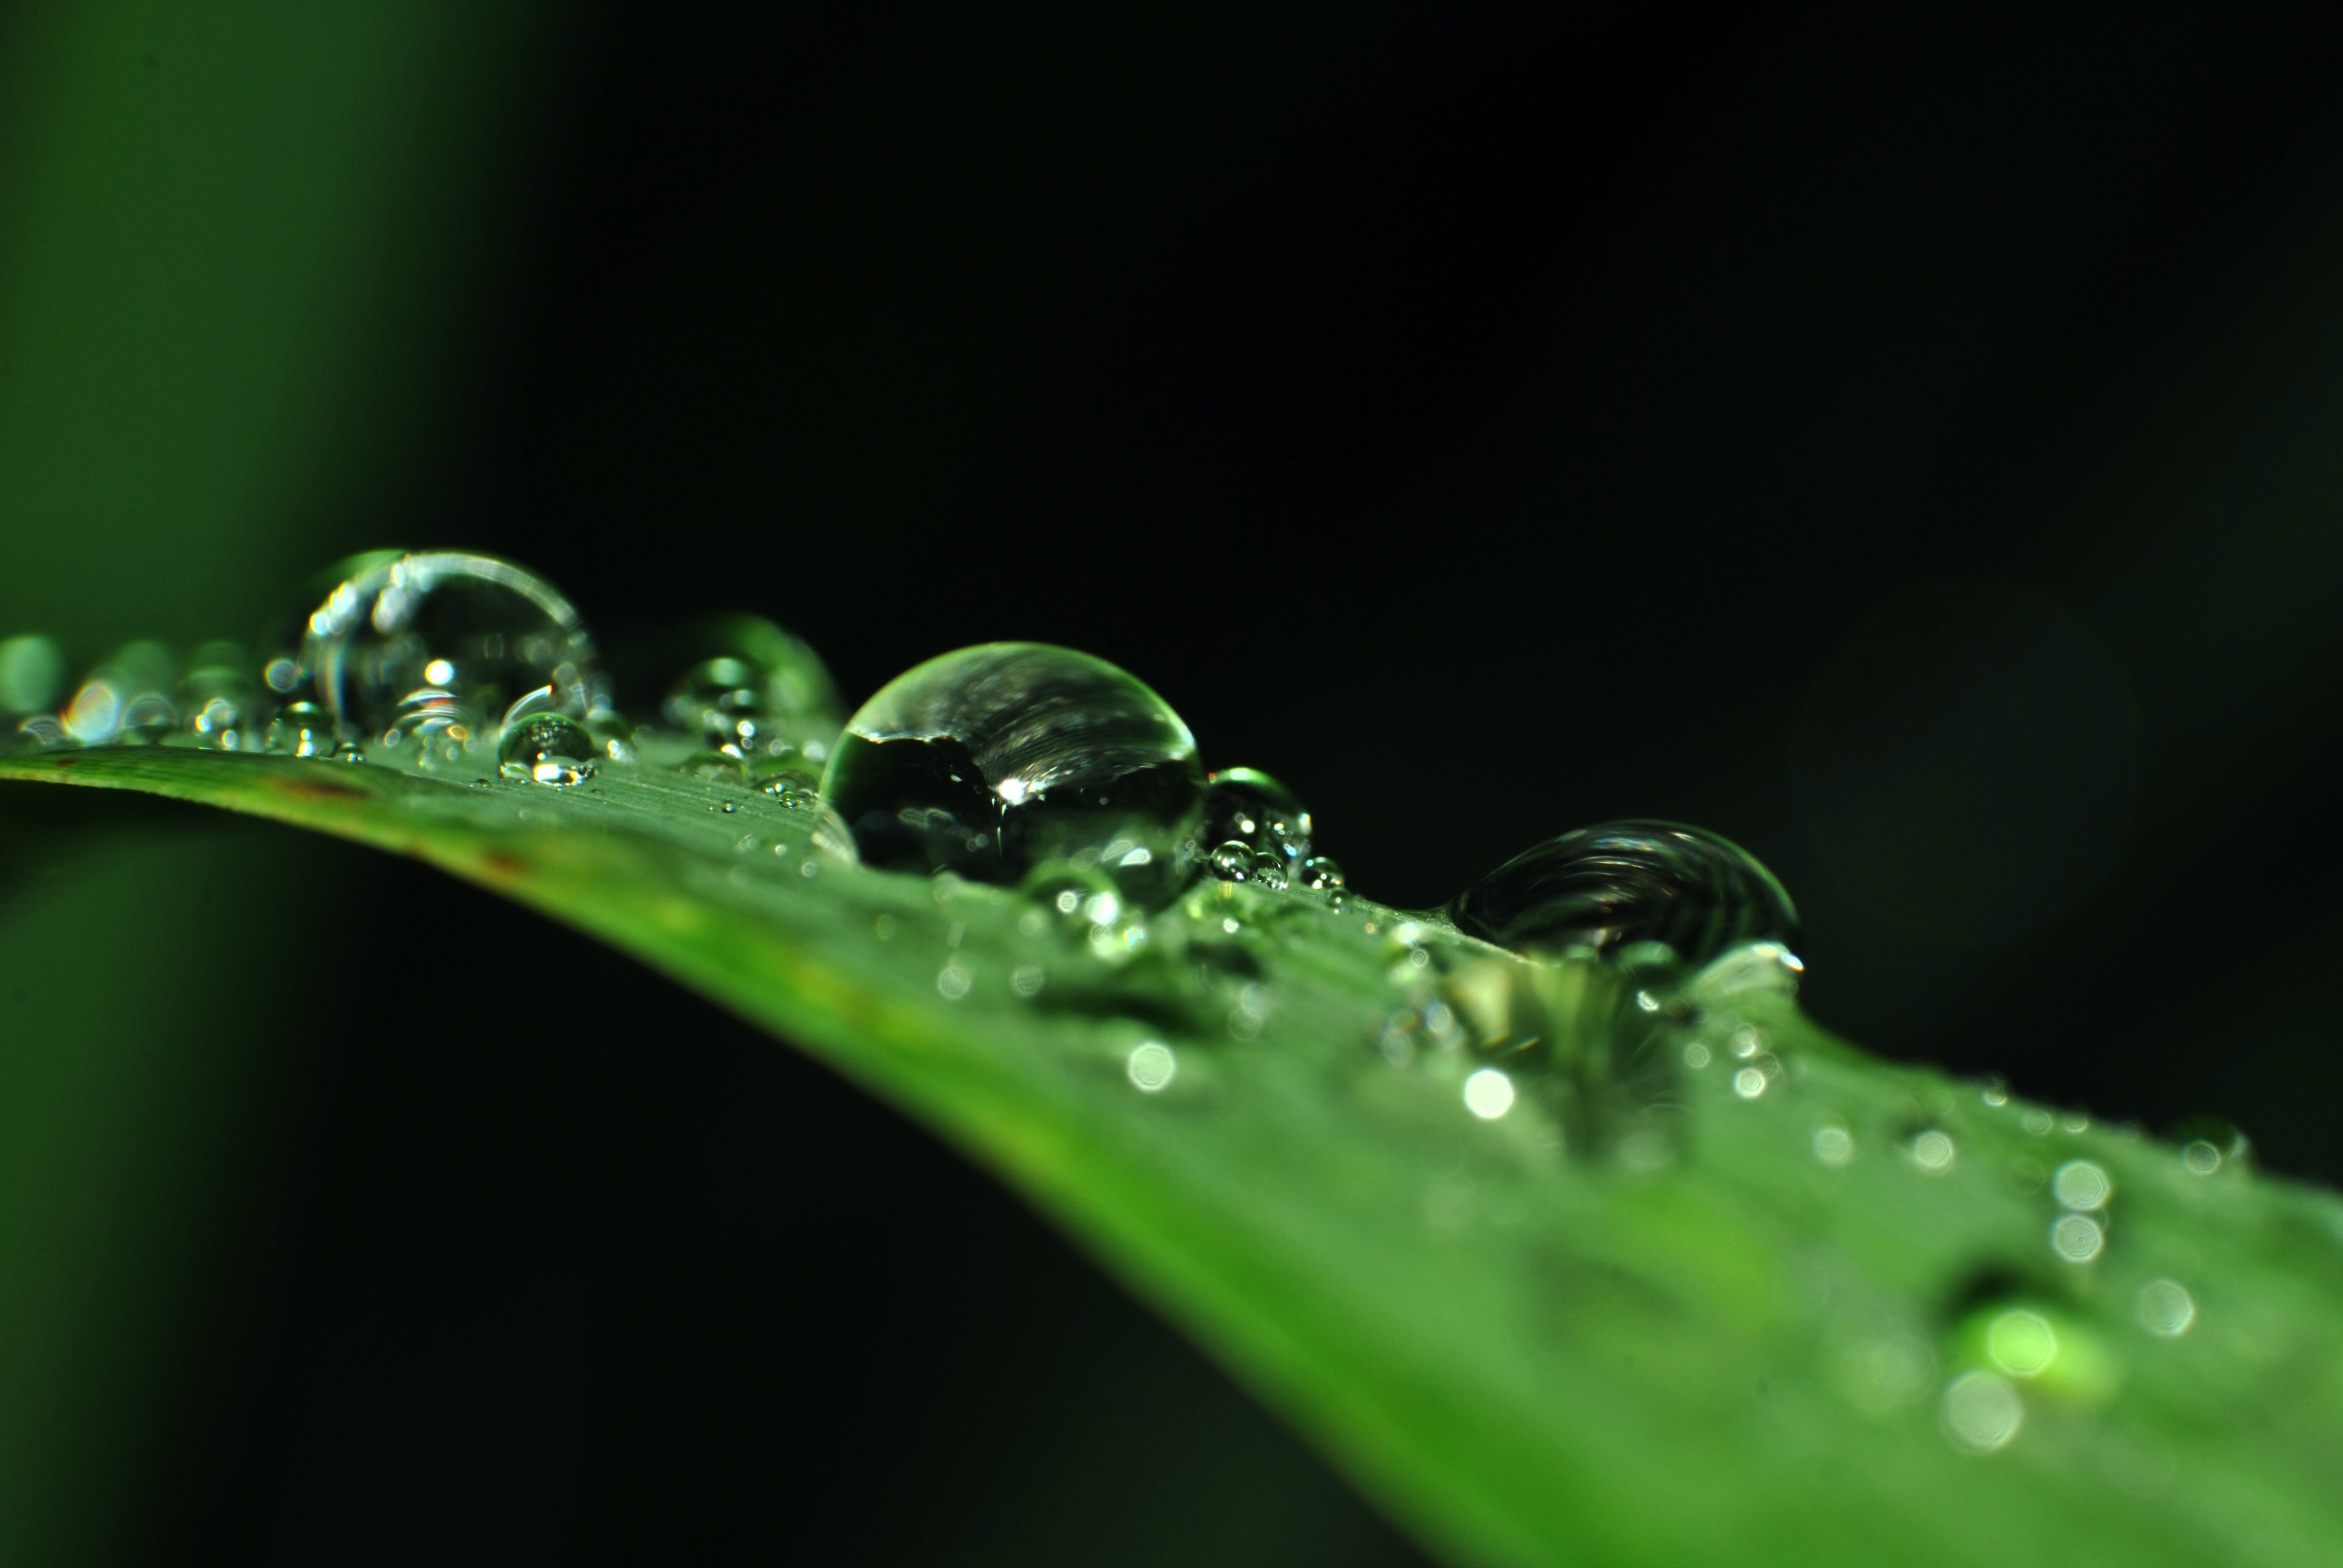 Macro Photography of Droplets of Water on Linear Leaf